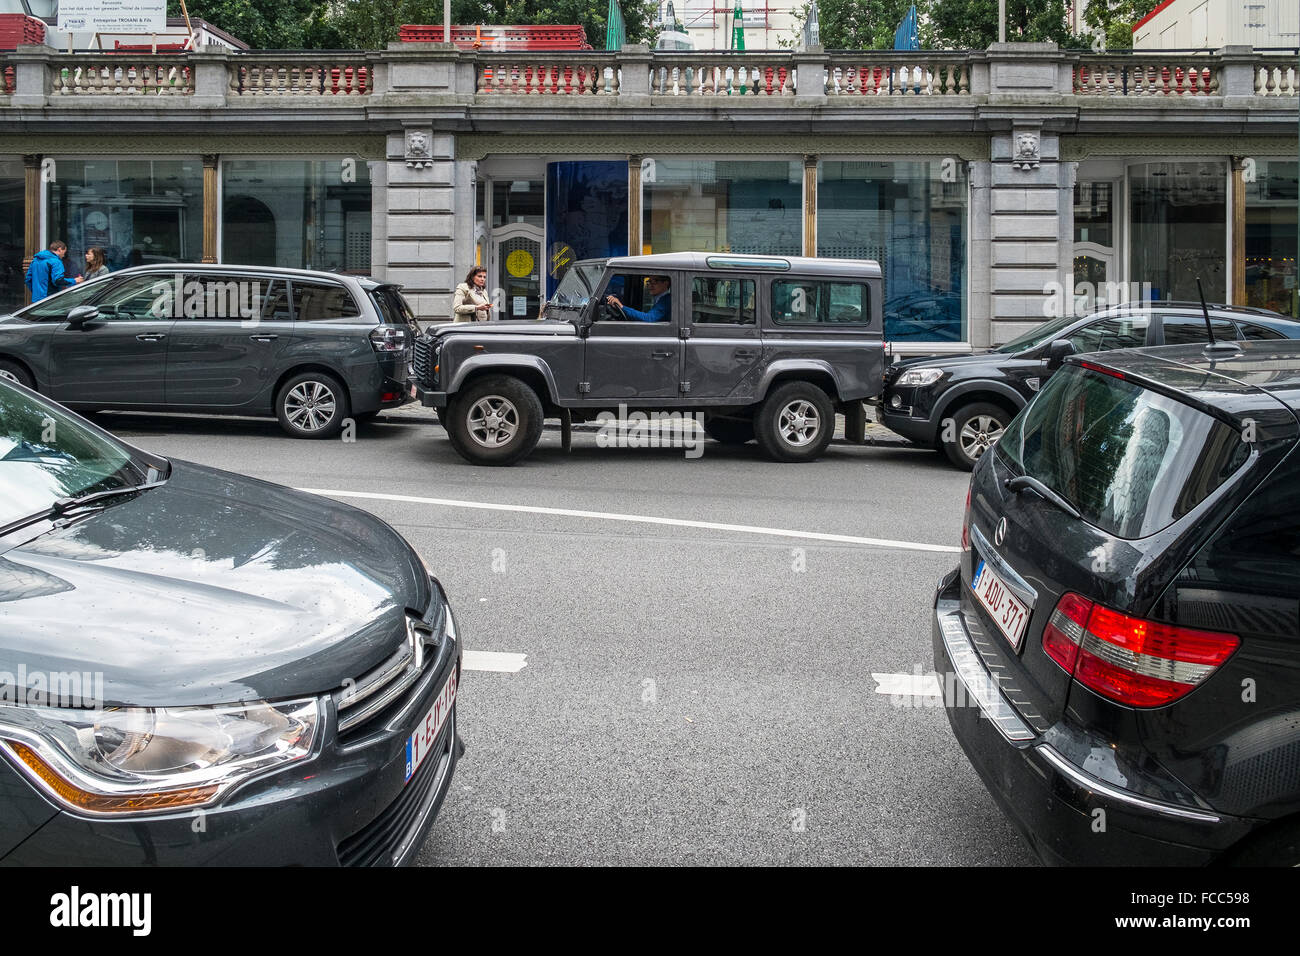 land rover parking by touch street tight squeeze - Stock Image